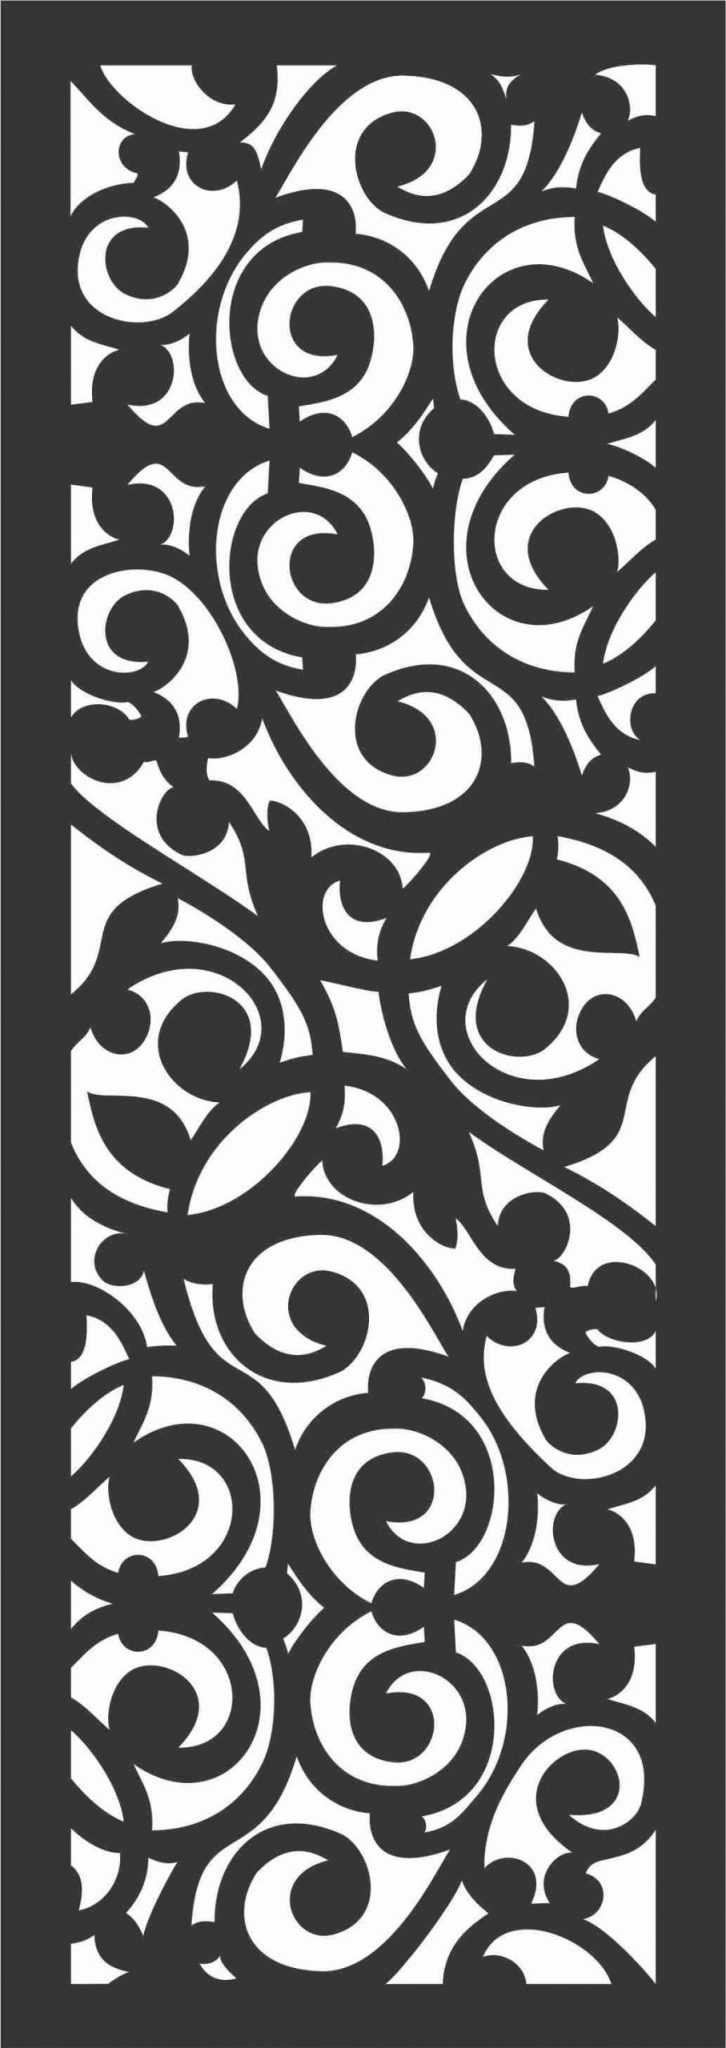 Floral Screen Patterns Design 9 Free DXF File